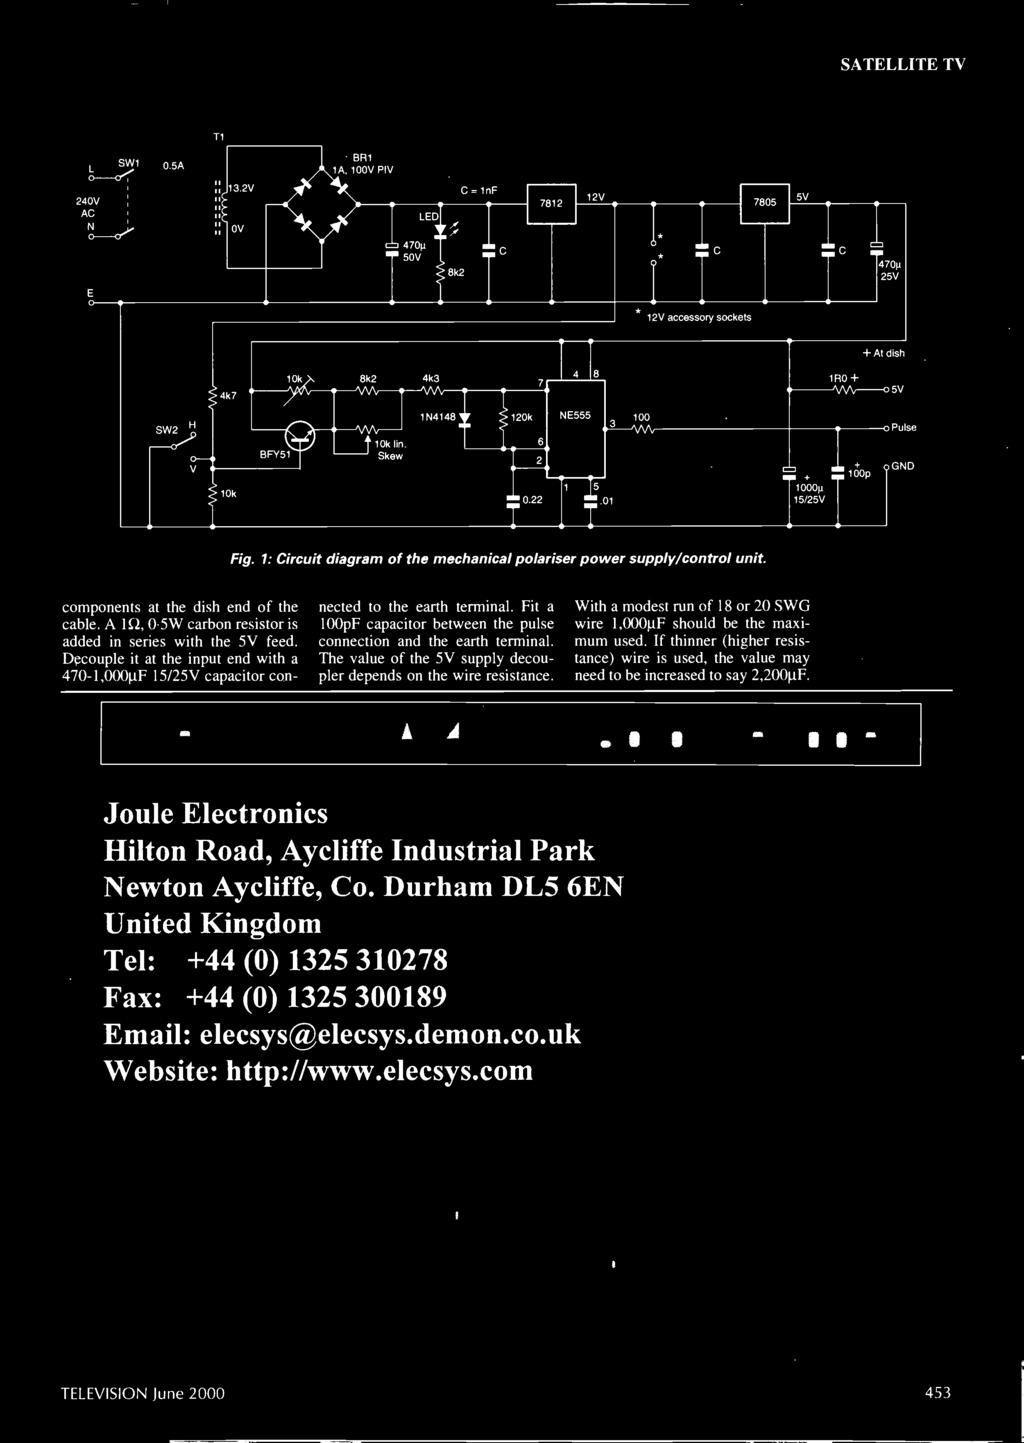 Servic4 Gosatellitedevelopments Pdf Wiring In Addition Un Imac Washer Diagram Moreover Dryer The Value Of 5v Supply Decoupler Depends On Wire Resistance With A Modest